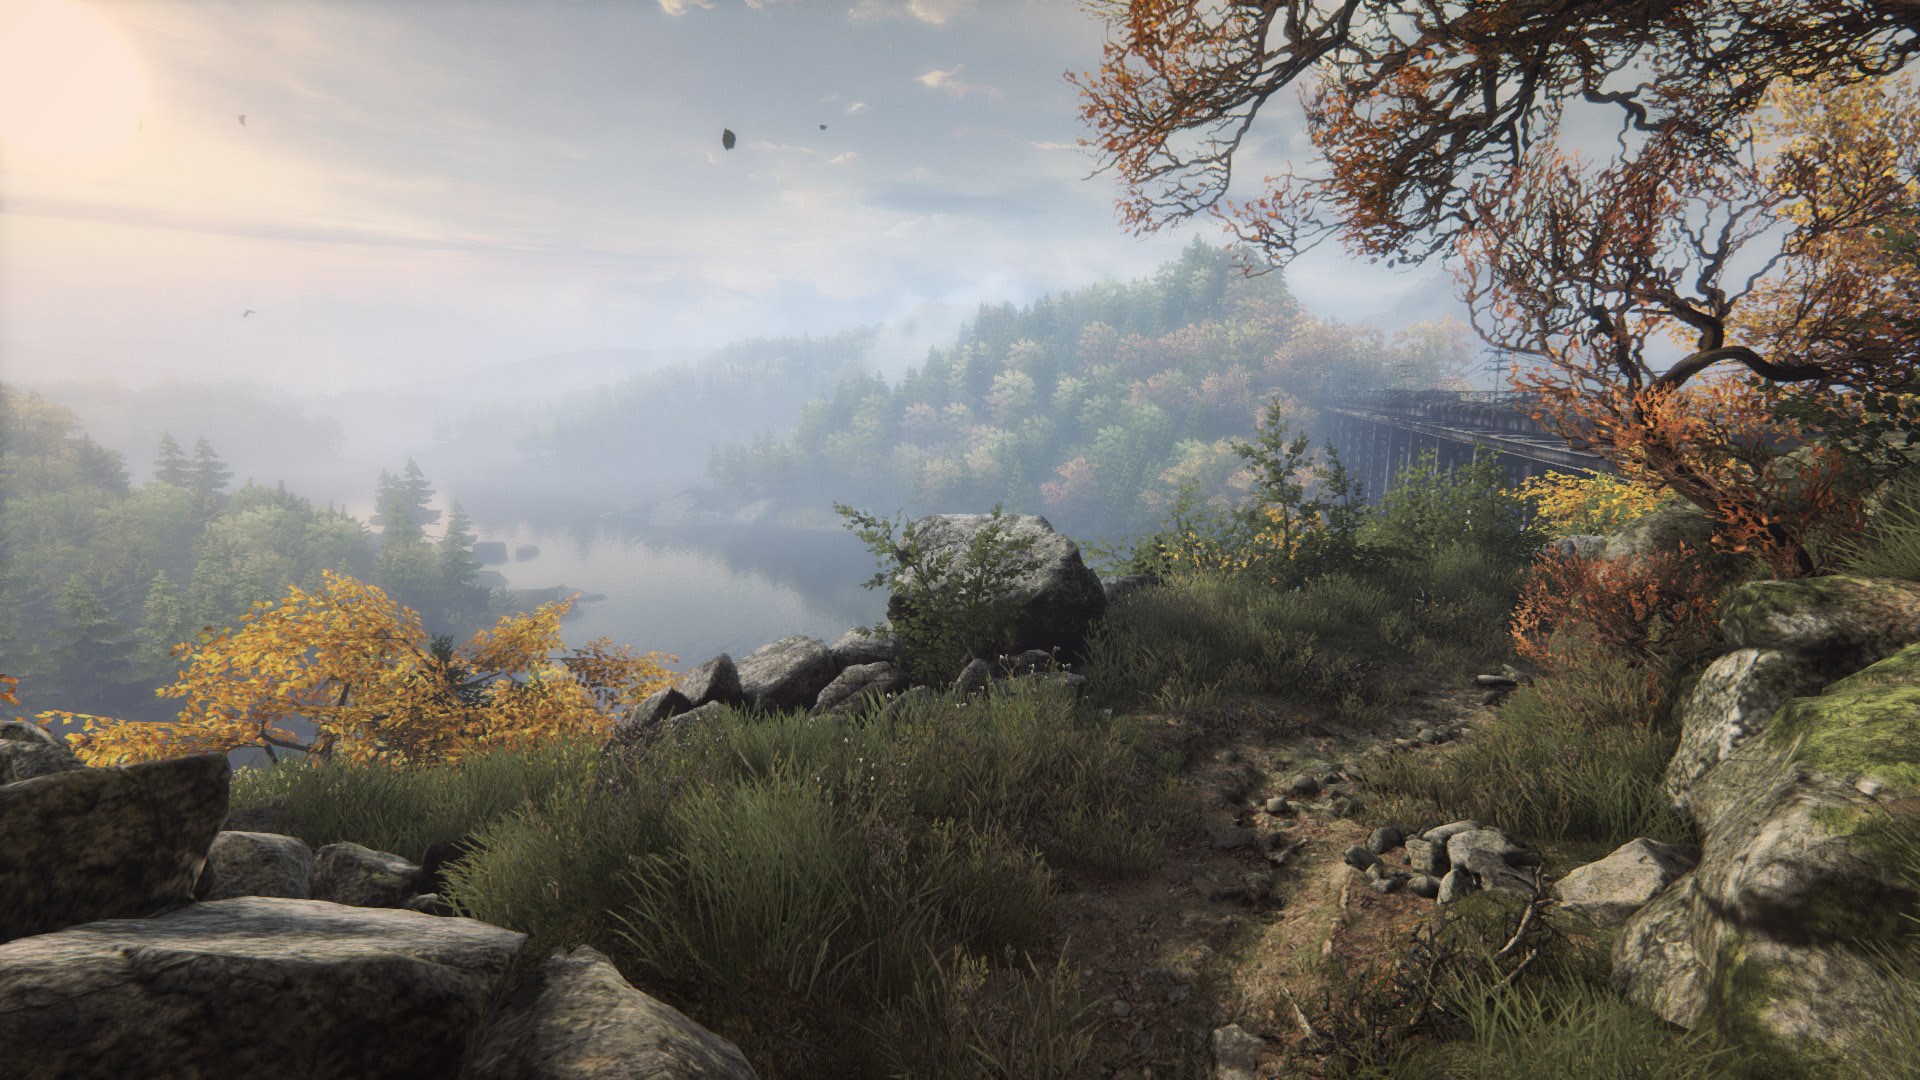 c95d675bd28a9ae8d3eba0f47387cfa8.jpg - Vanishing of Ethan Carter, the